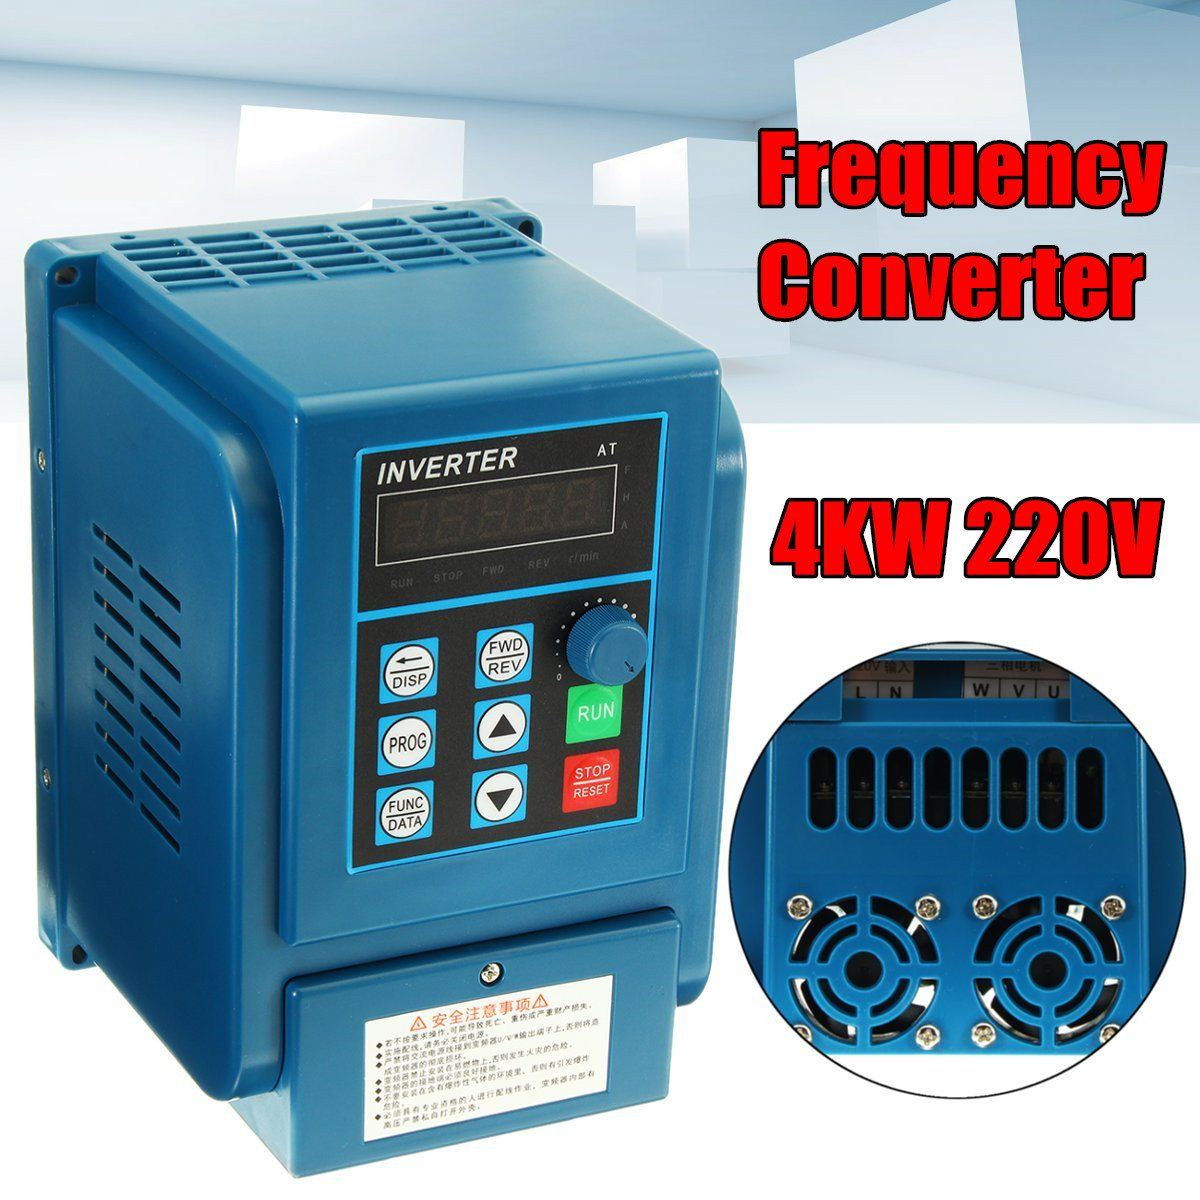 220V 4KW 50HZ/60HZ 5HP Variable Frequency Drive Inverter VFD New Arrival tp760 765 hz d7 0 1221a